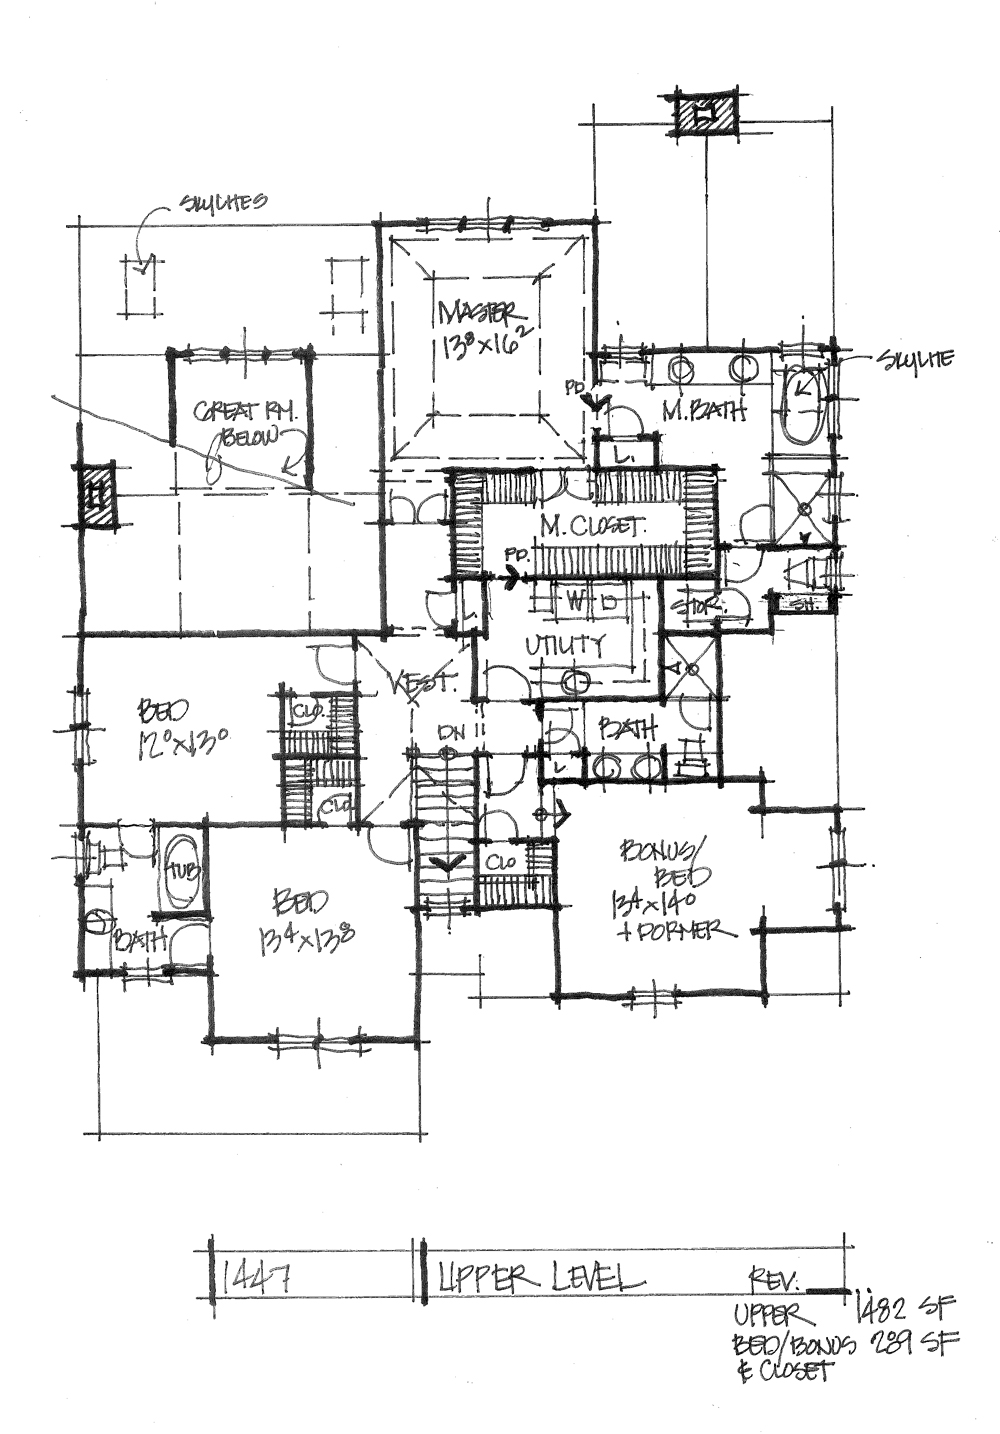 Check out the second floor plan of house plan 1447.